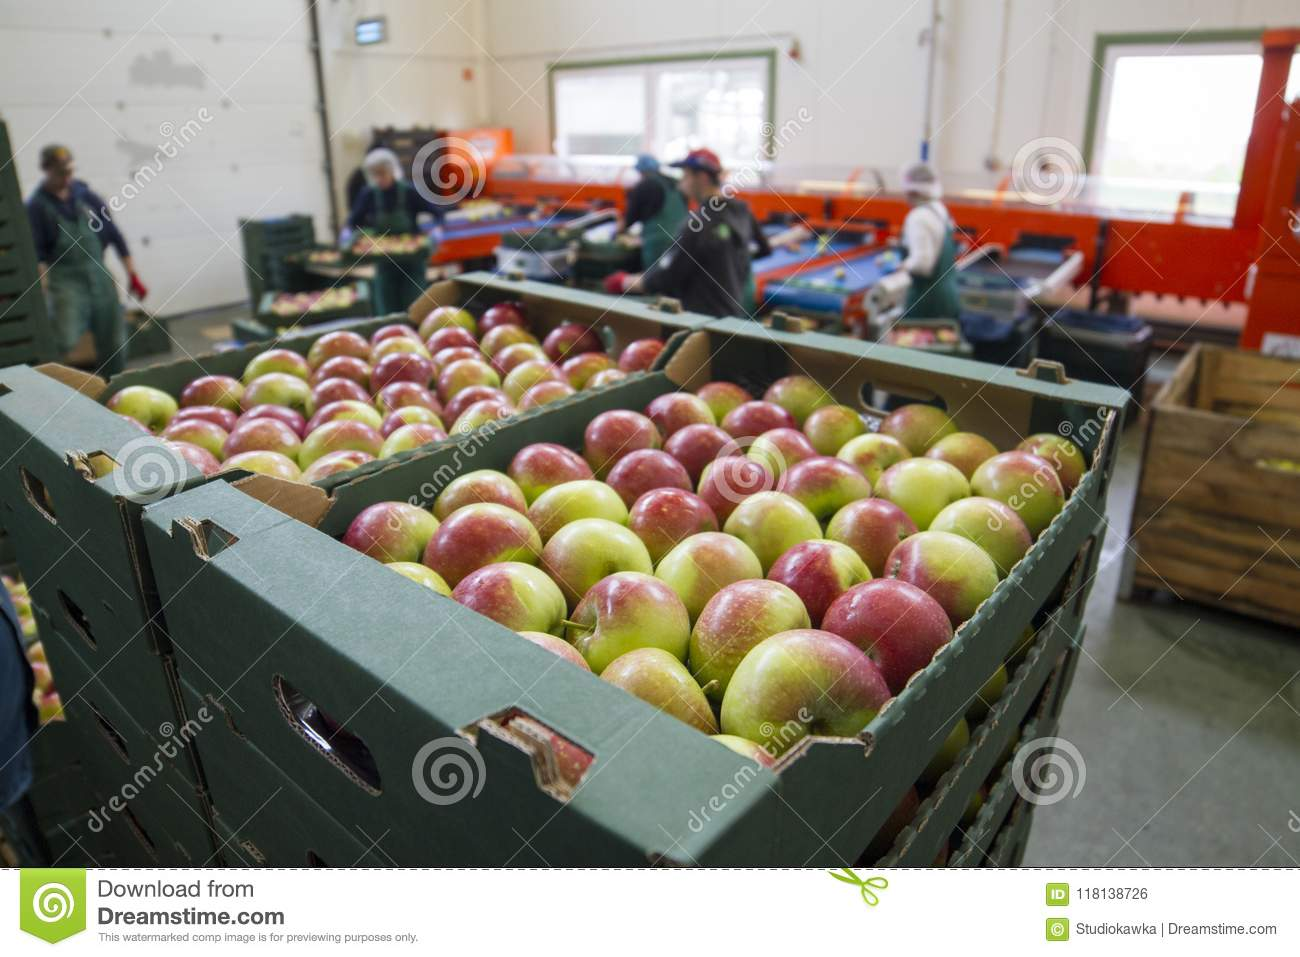 Fruit processing plant, Poland, Lubelskie, 08.2014